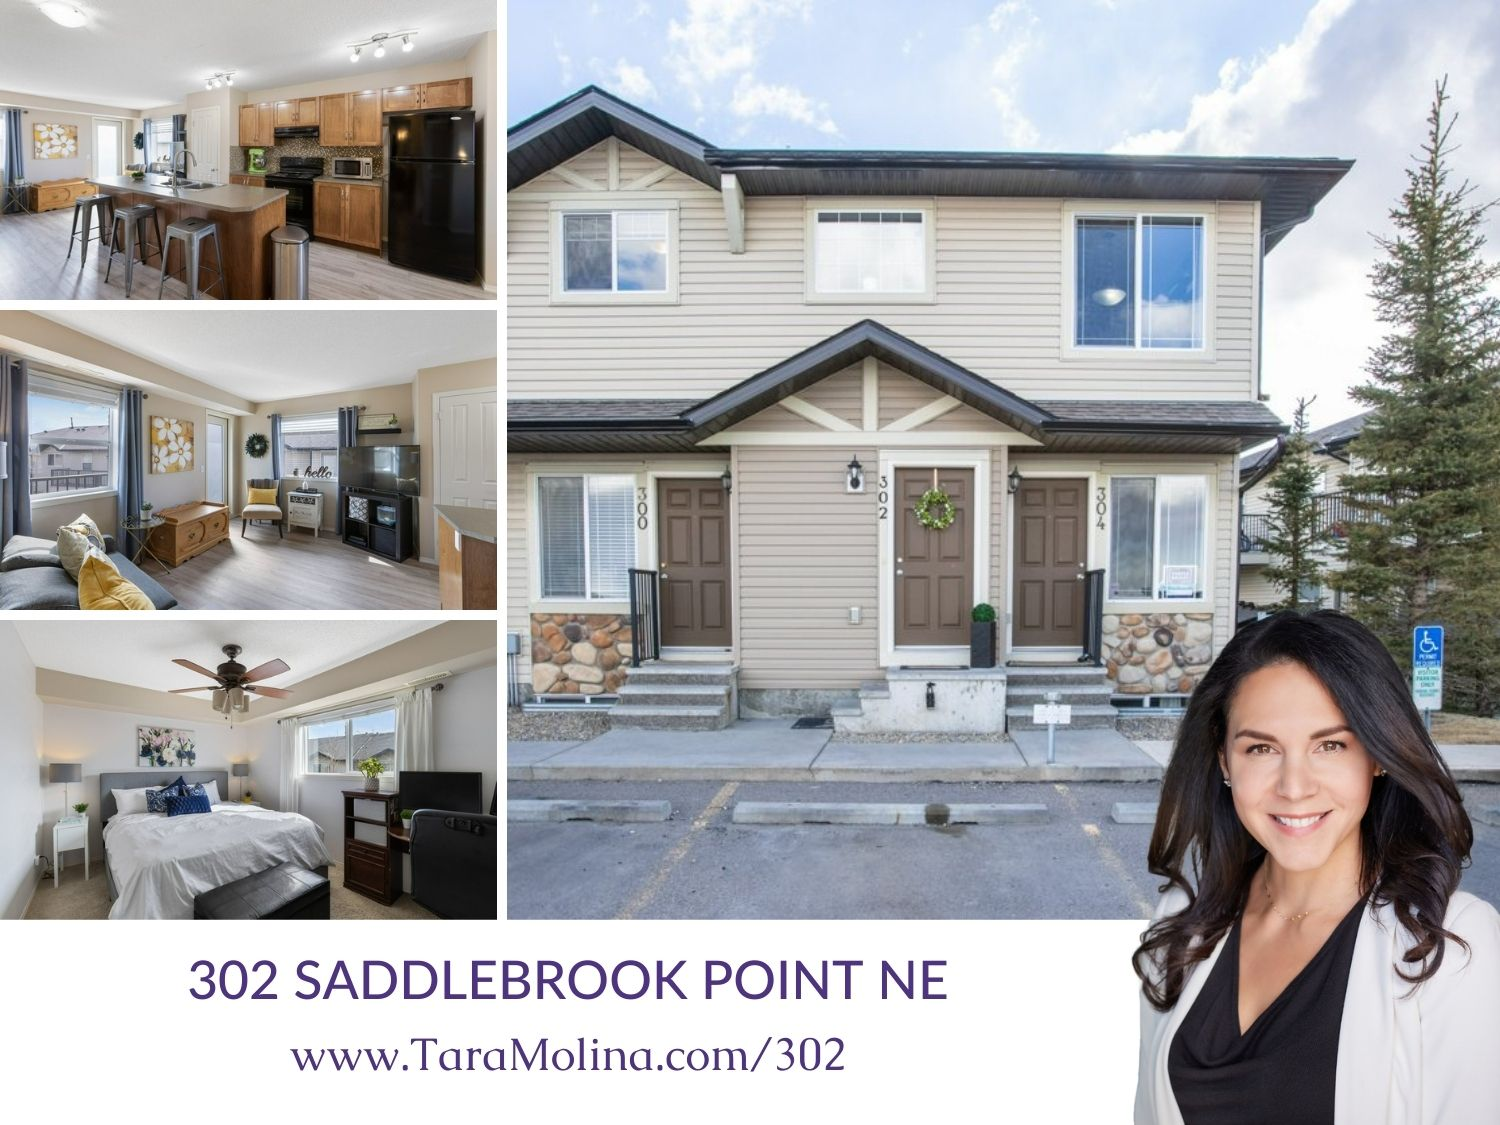 302 saddlebrook point ne (2)